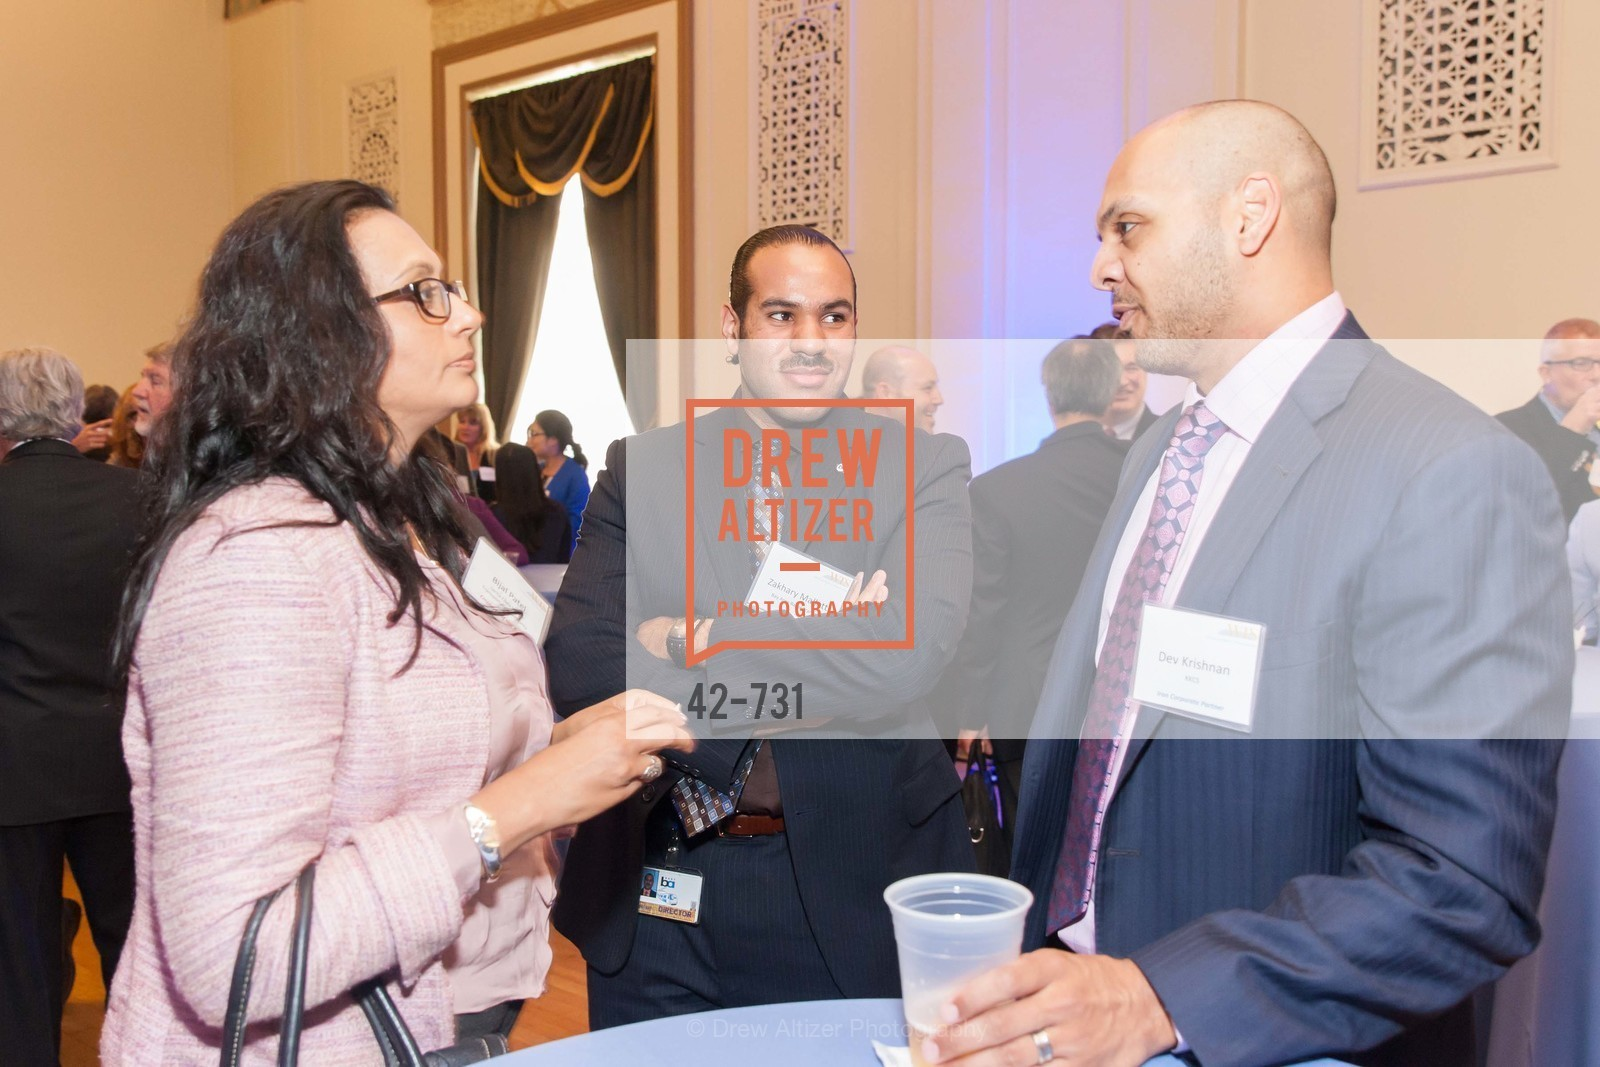 Bijal Patel, Zakhary Mallett, Dev Krishnan, WOMEN'S TRANSPORTATION SEMINAR SF Bay Area Chapter Annual Scholarship Awards, US, May 15th, 2015,Drew Altizer, Drew Altizer Photography, full-service agency, private events, San Francisco photographer, photographer california